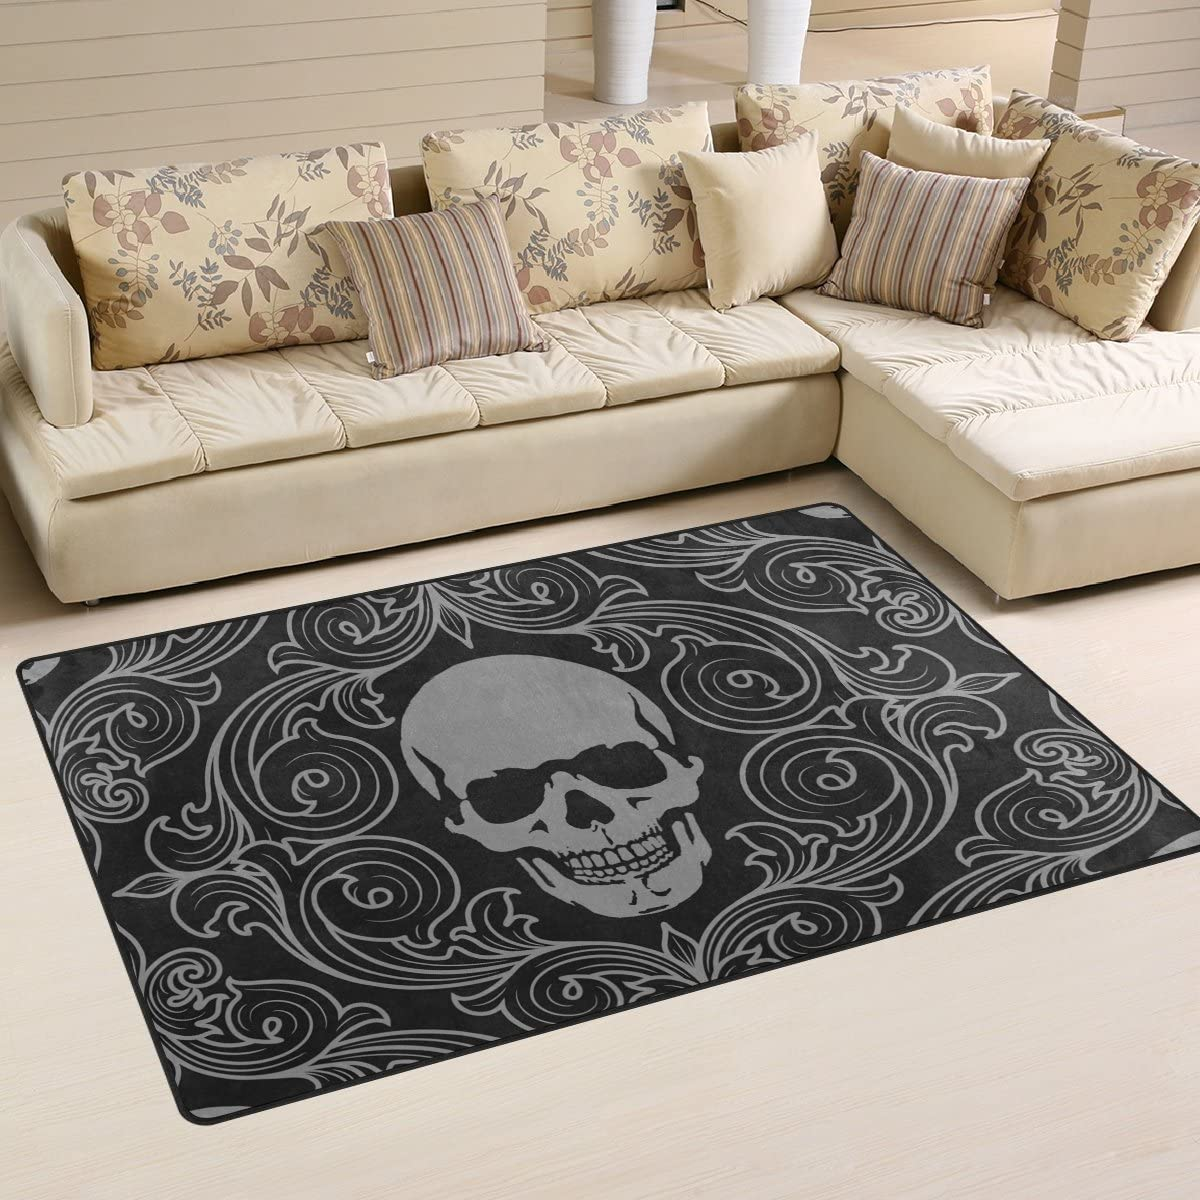 LORVIES Skull Pattern Area Rug Carpet Non-Slip Floor Mat Doormat